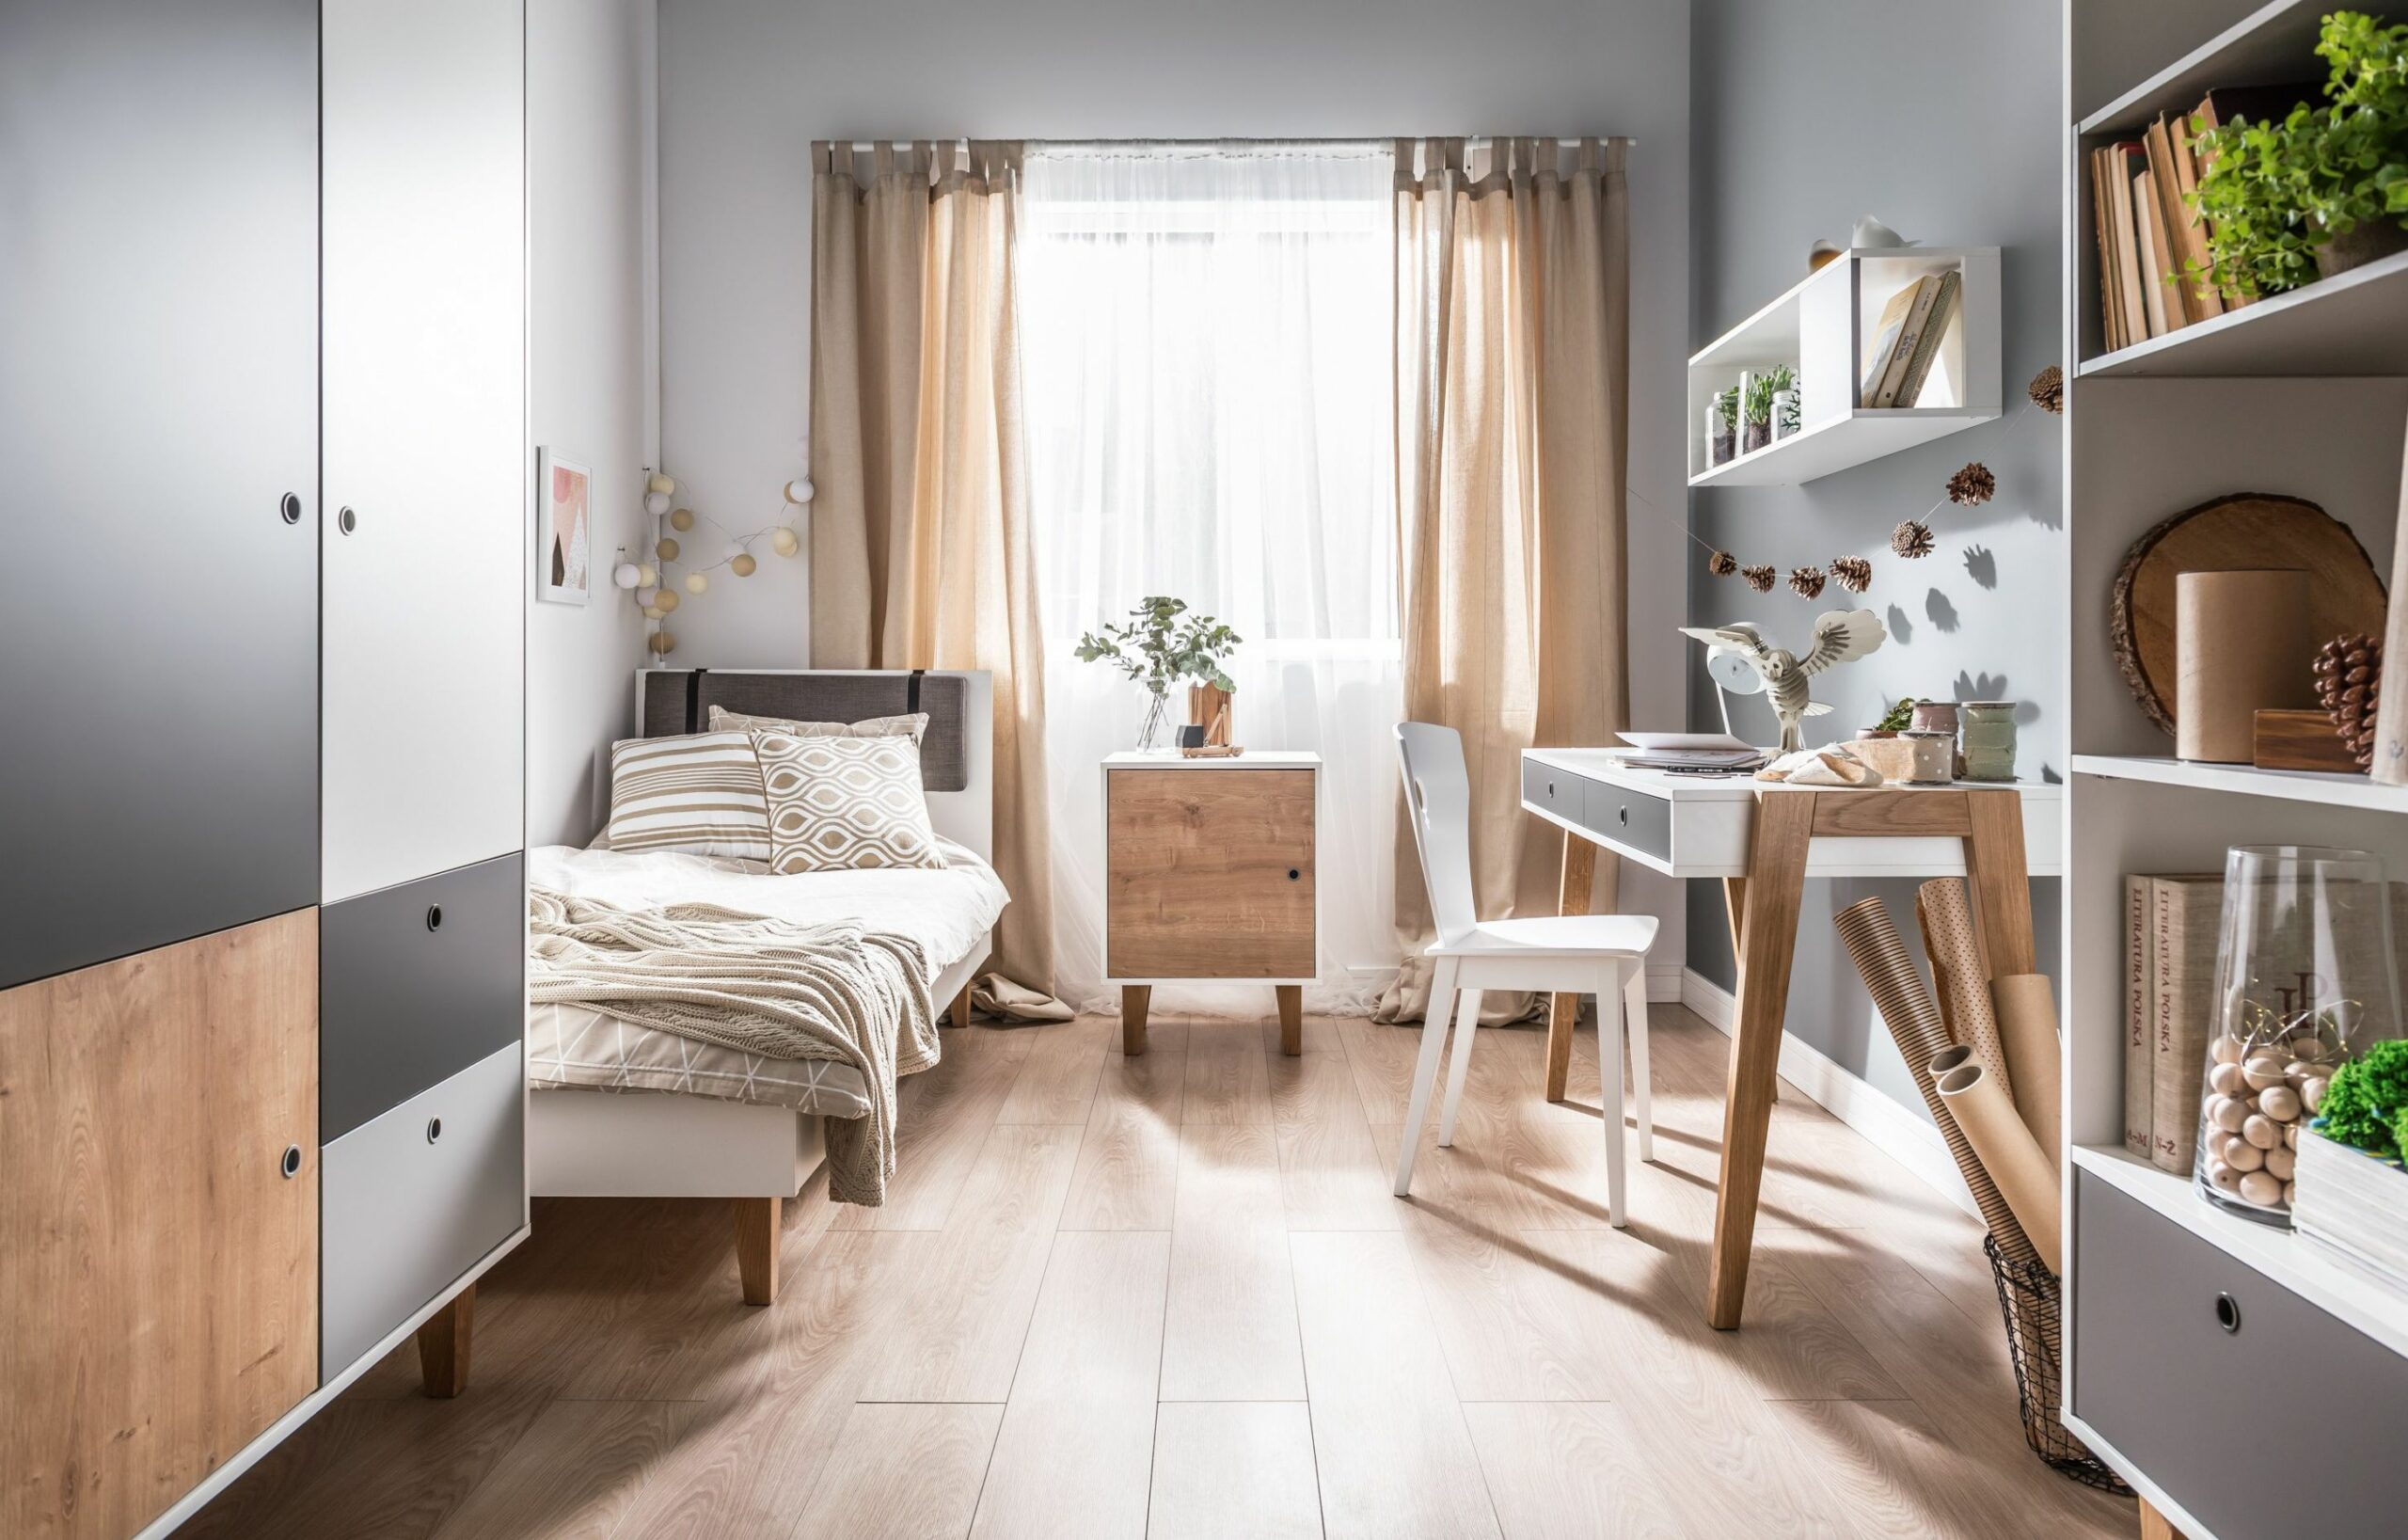 12 Small Bedroom Ideas To Fall In Love With – Small Bedroom ..